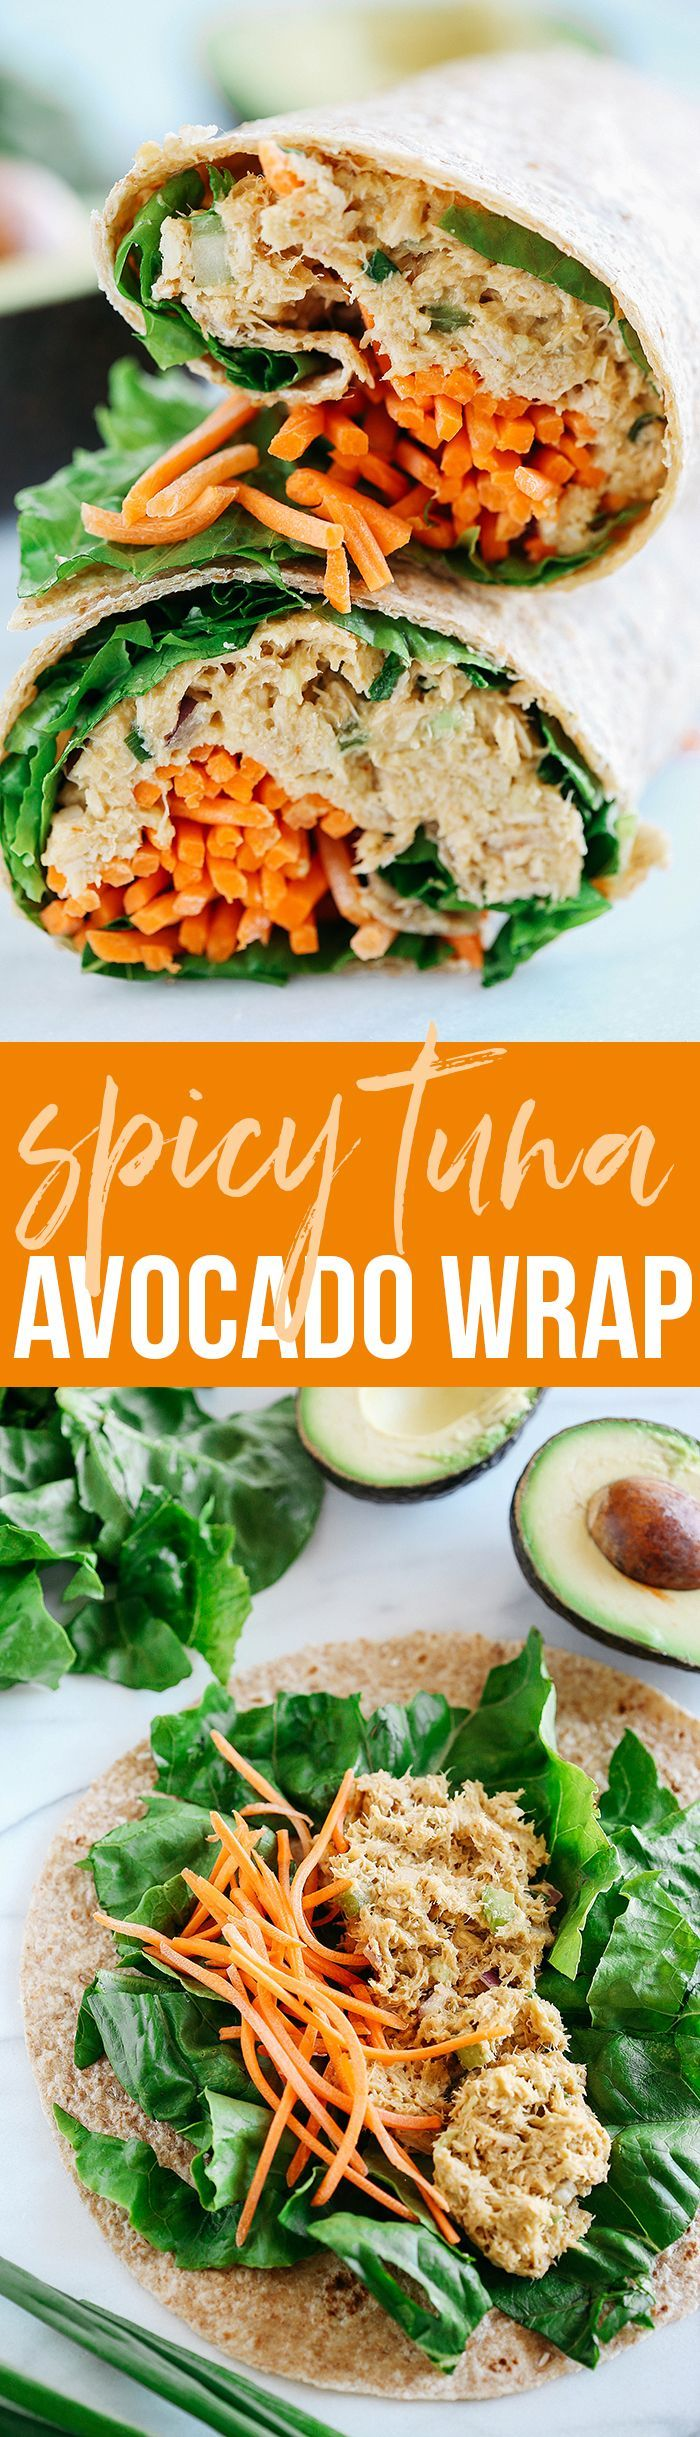 These Spicy Tuna Avocado Wraps are light and fresh, full of flavor and only take 5 minutes to make! The perfect healthy lunch for a busy work week!